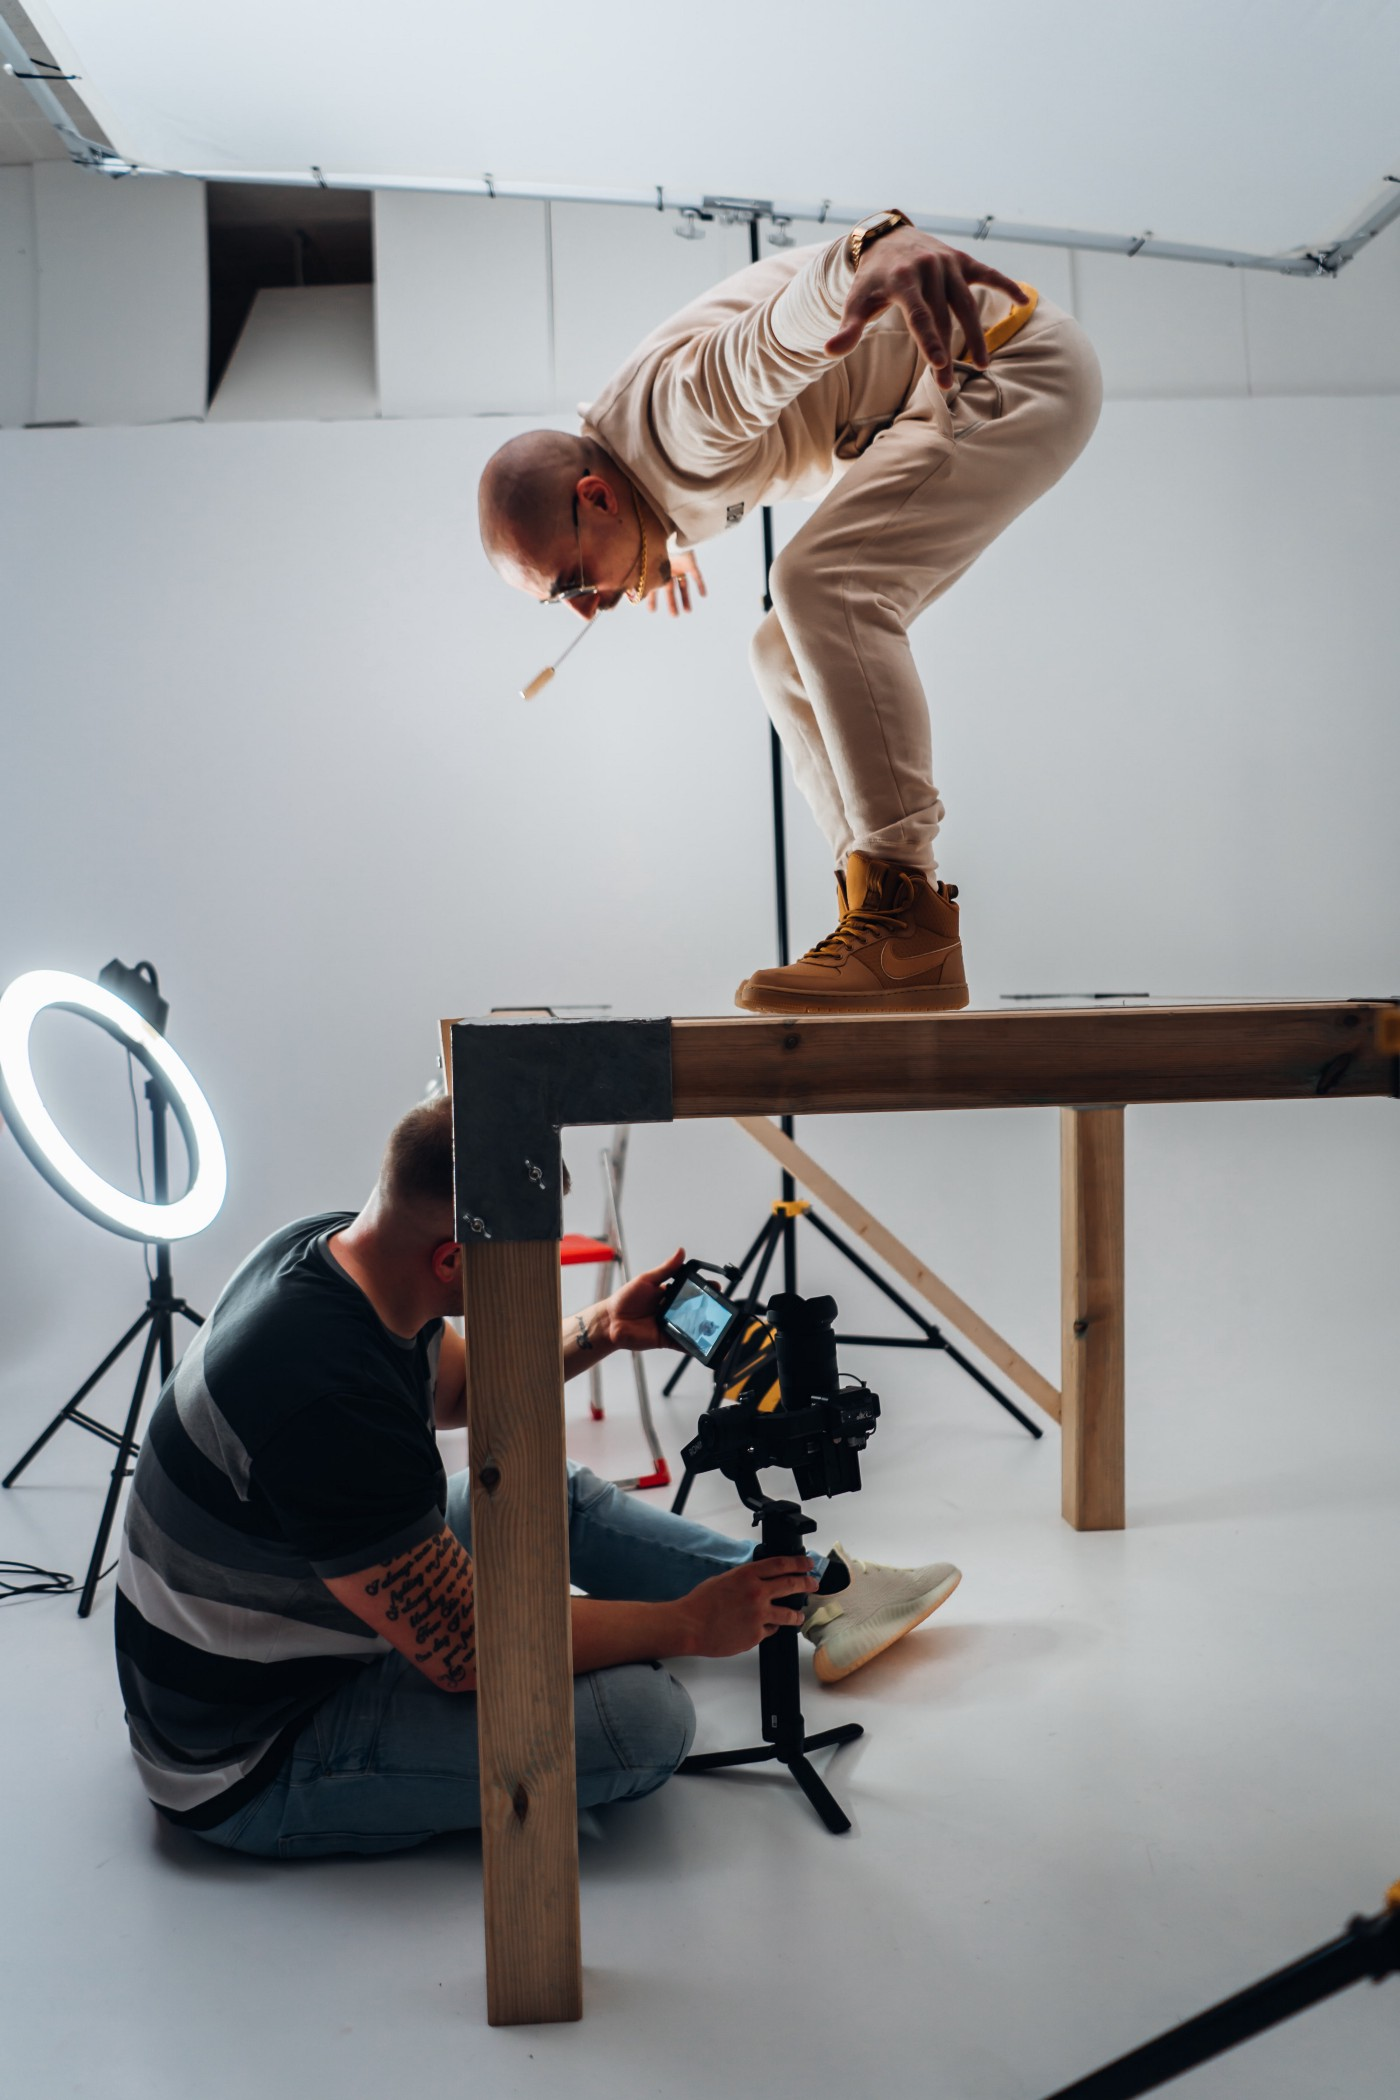 Photoshoot with the photographer sitting under a table while his subject poses on top of it.